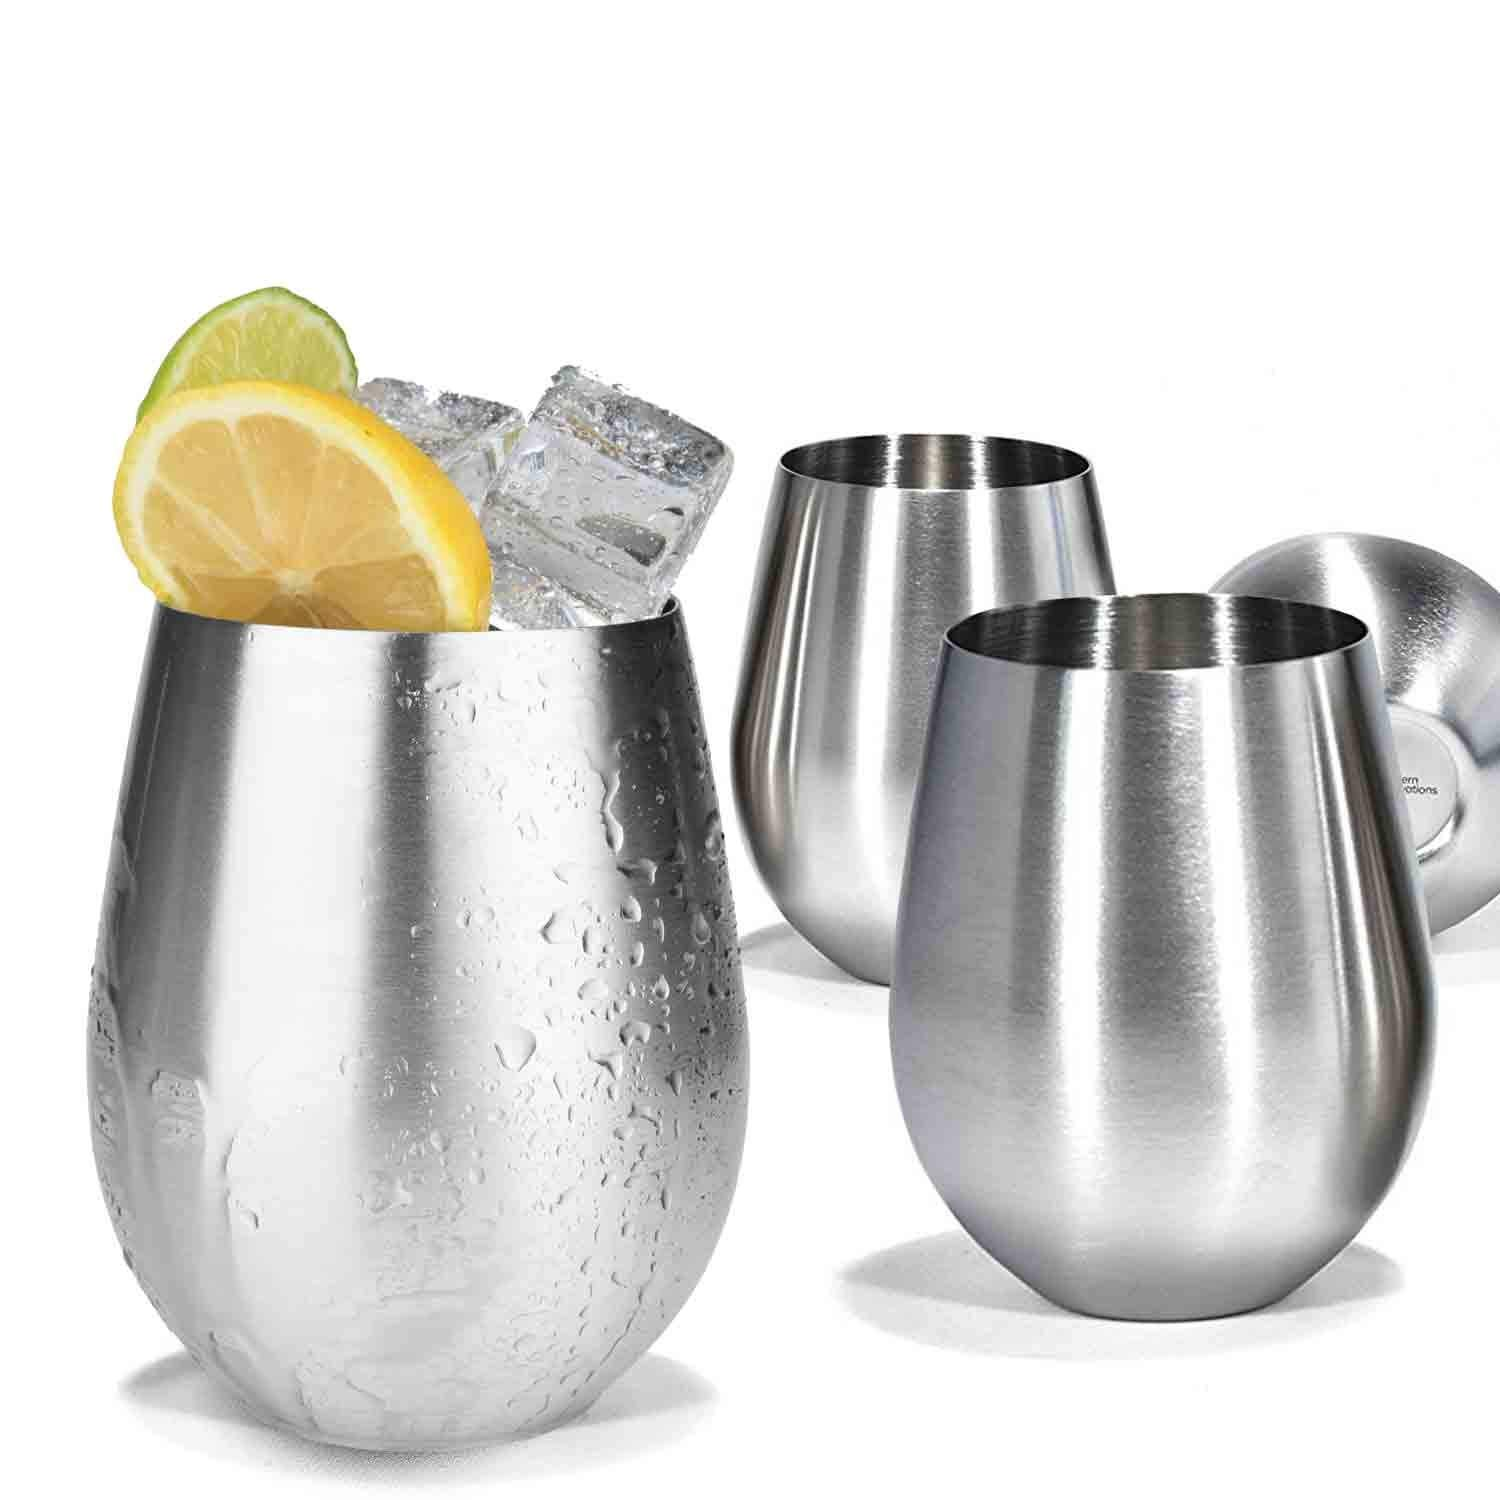 Modern Innovations Stainless Steel Stemless Wine Glasses, Set of 4, 18 Oz Elegant Wine Glasses Made of Dishwasher Safe Unbreakable BPA Free Shatterproof SS Great for Daily, Formal & Outdoor Use